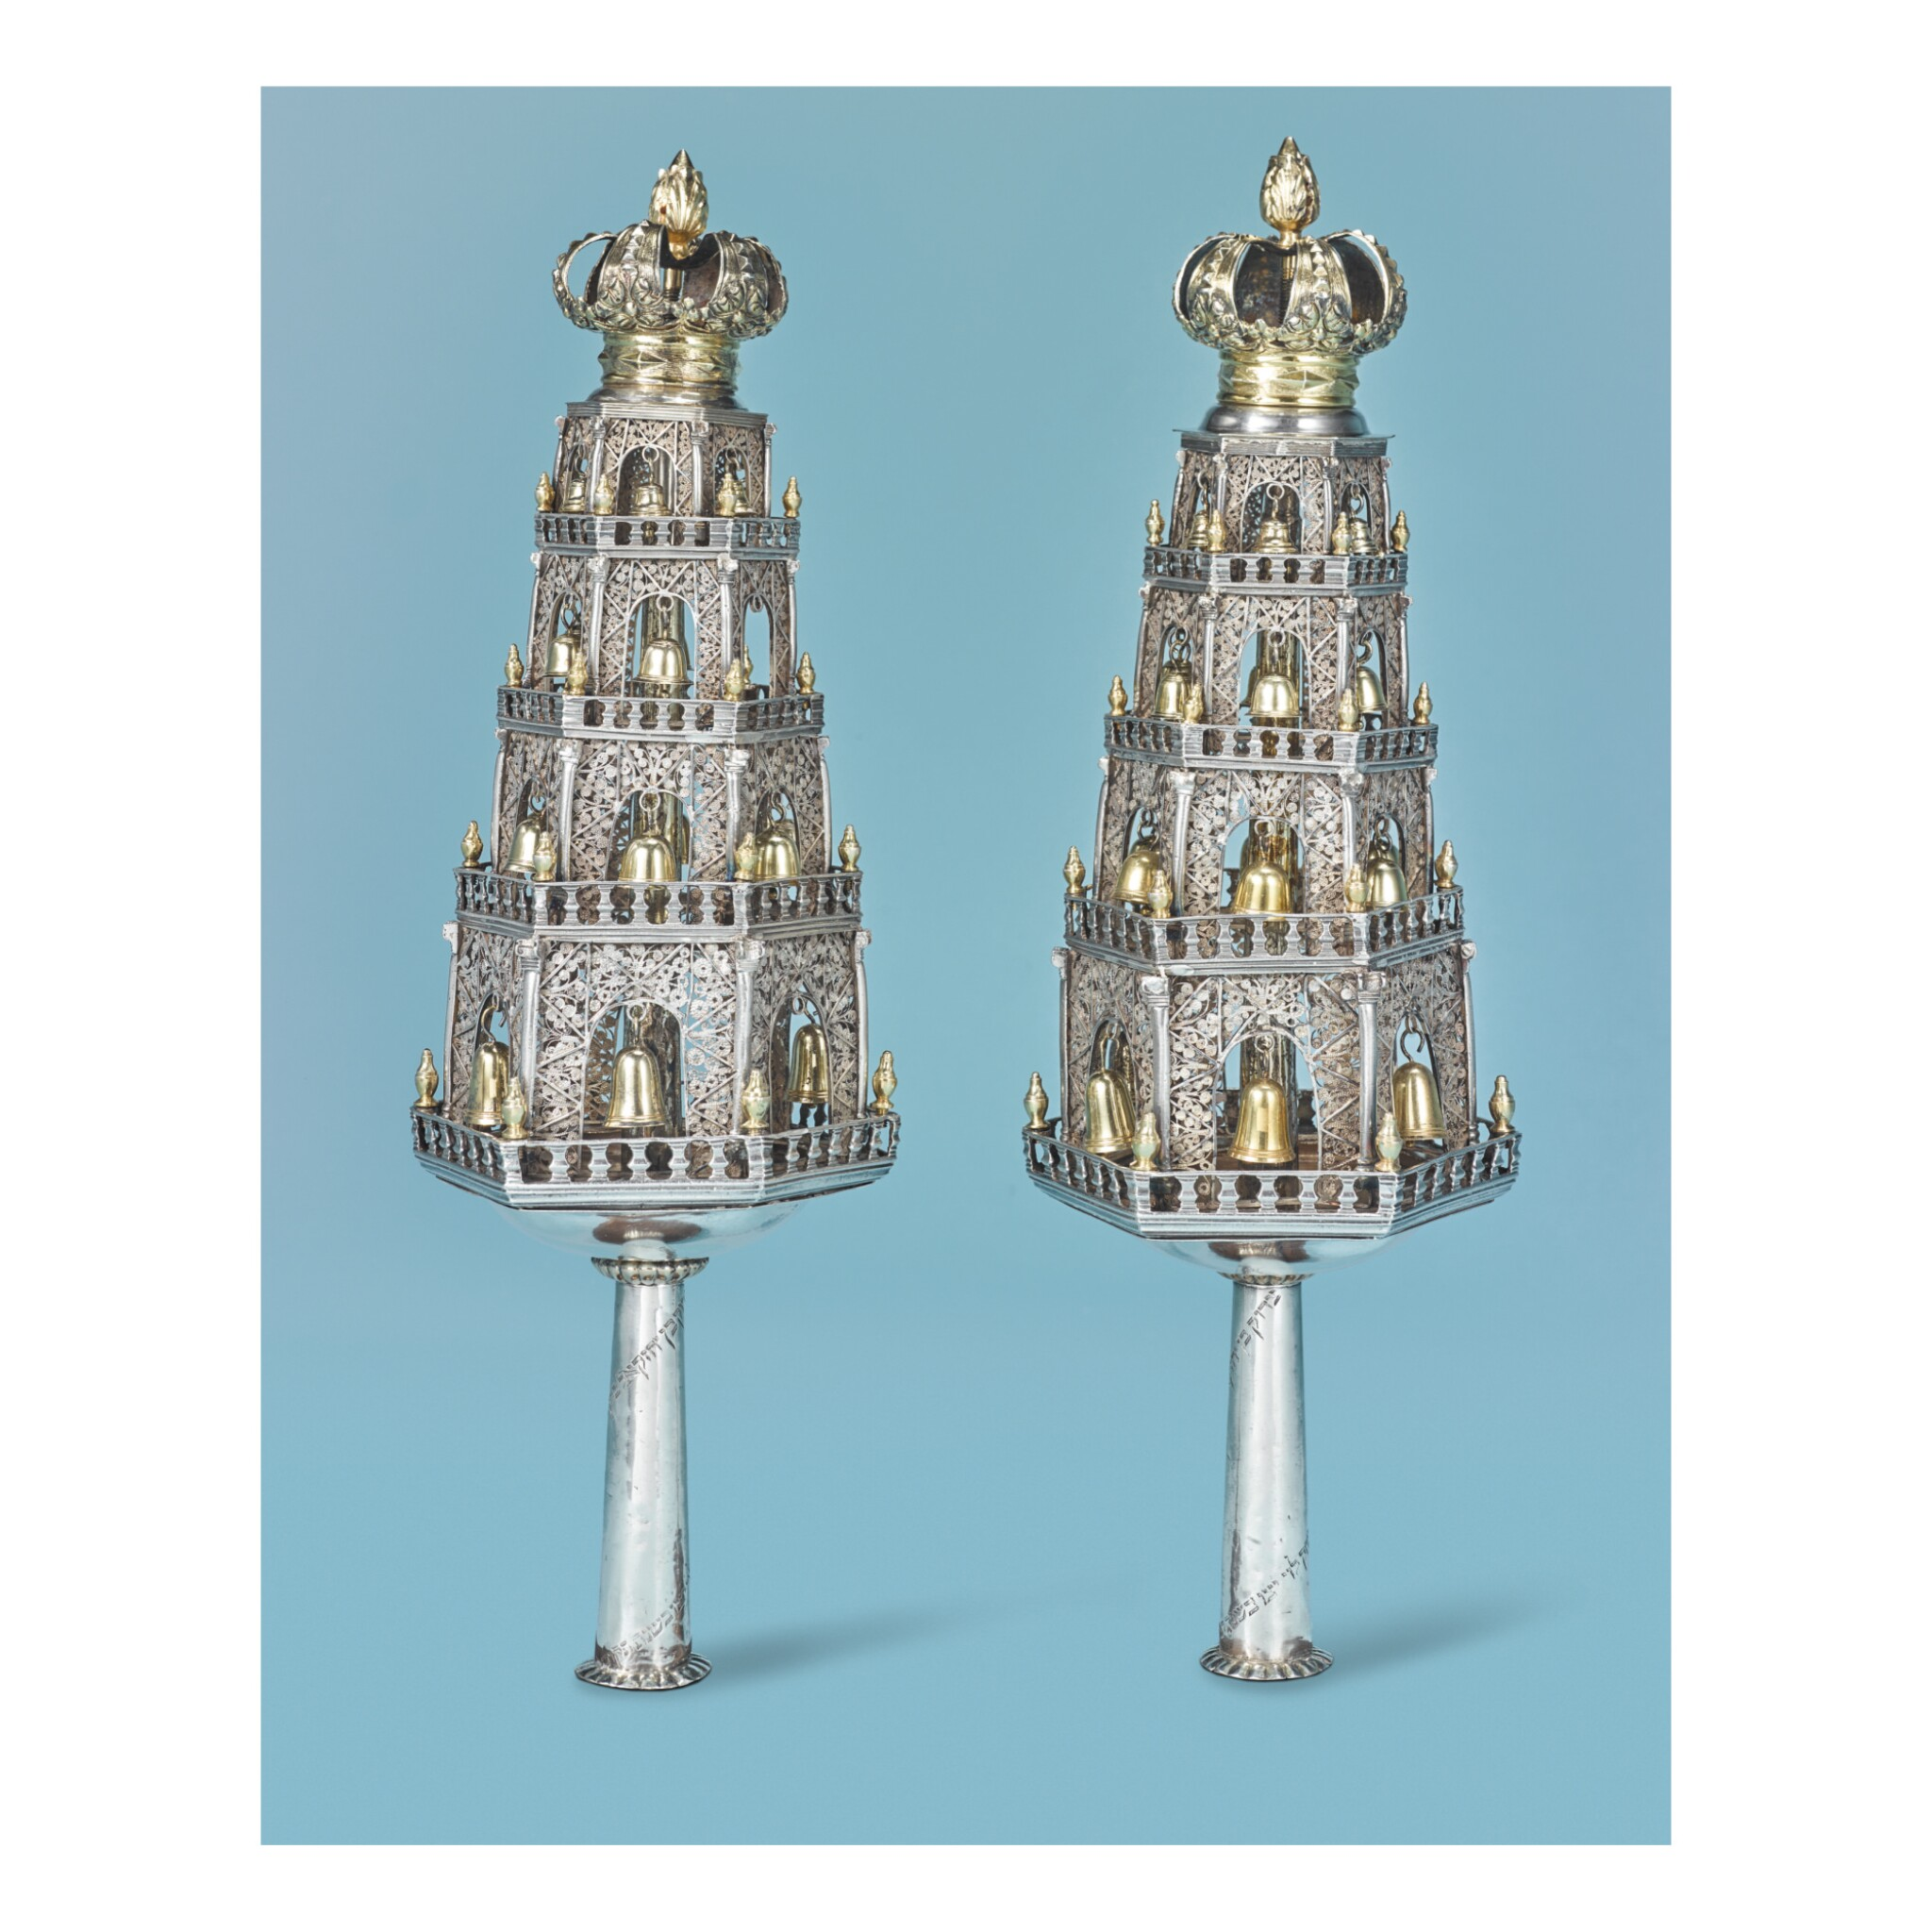 View full screen - View 1 of Lot 76. A PAIR OF DUTCH PARCEL-GILT SILVER AND FILIGREE TORAH FINALS, 18TH CENTURY.